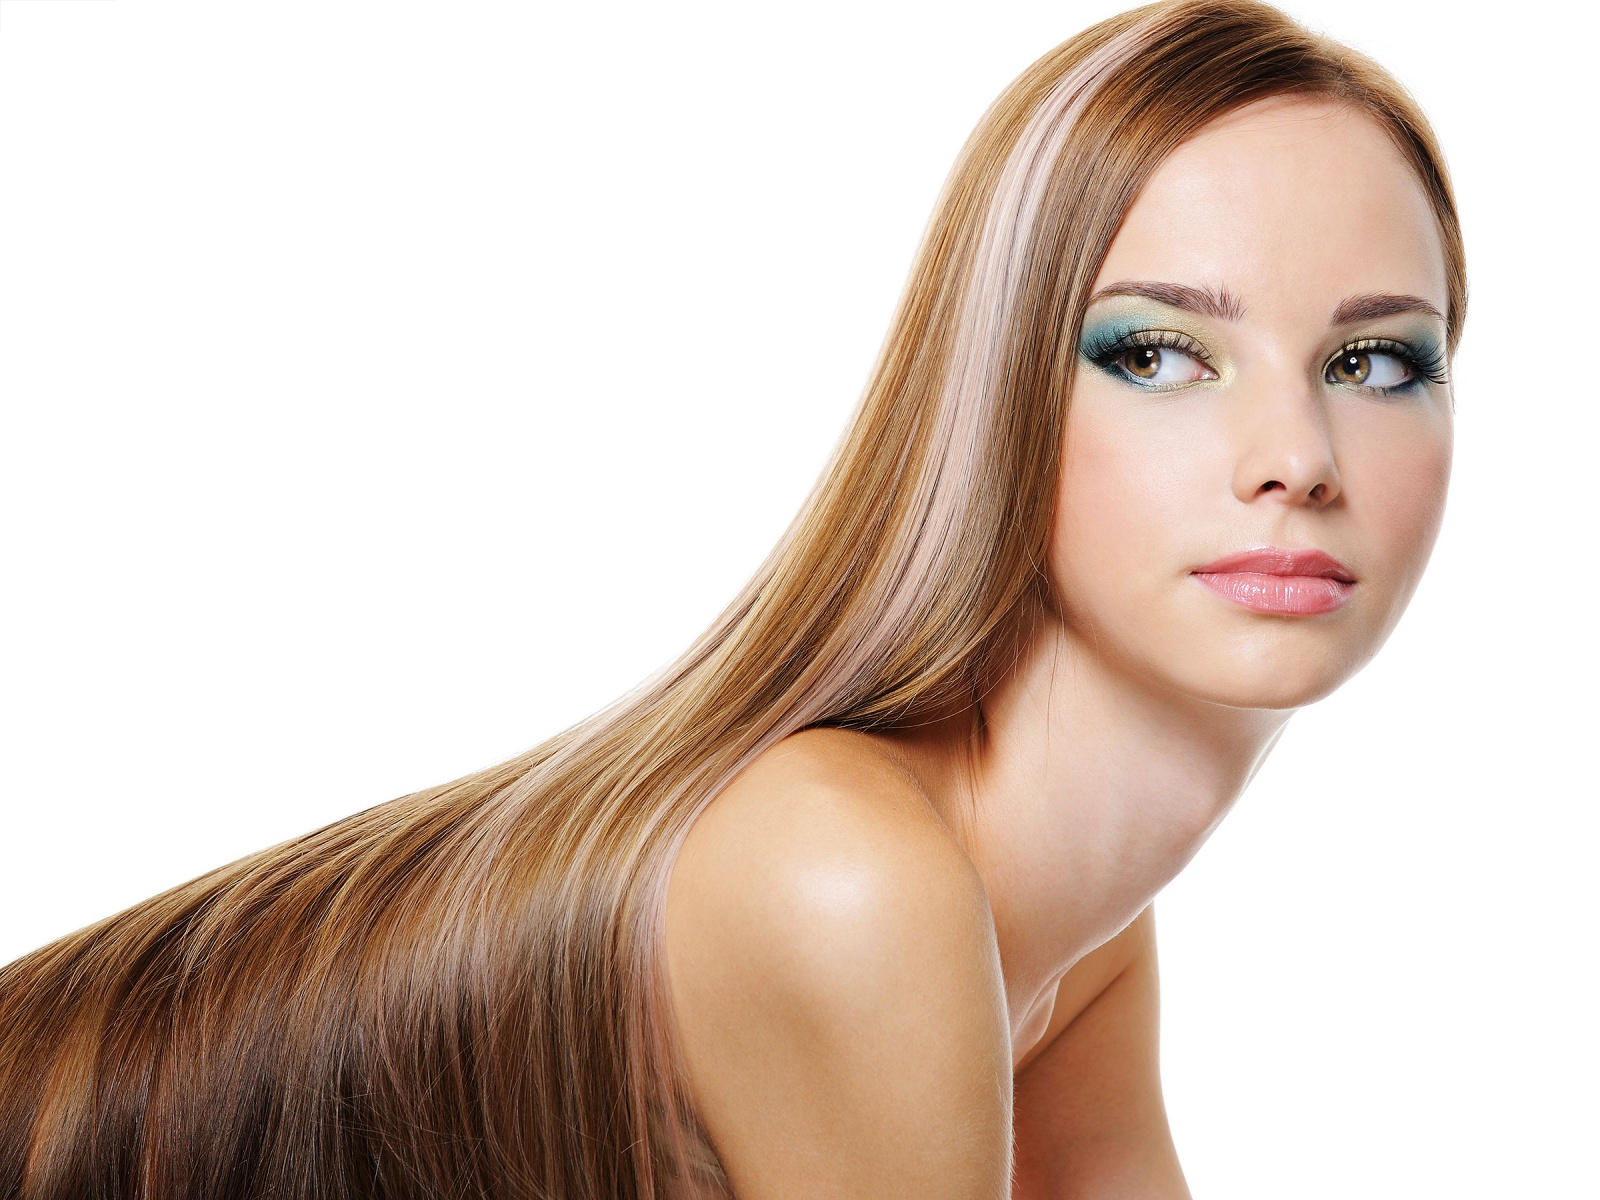 Effective Natural Ways to Make Hair Grow Longer Faster